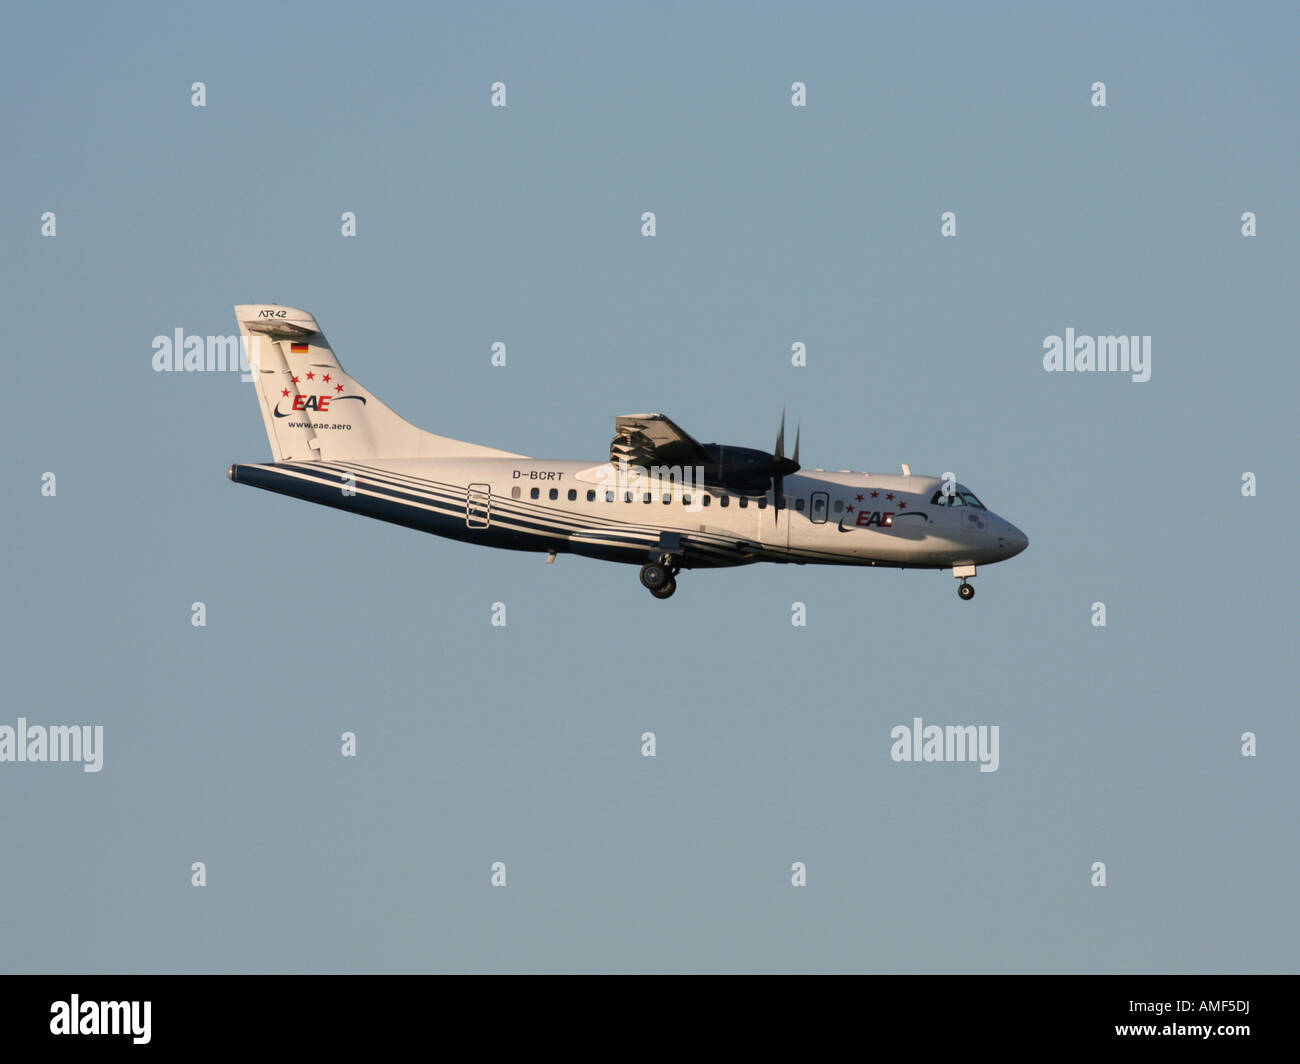 ATR 42 turboprop airliner operated by EAE - Stock Image